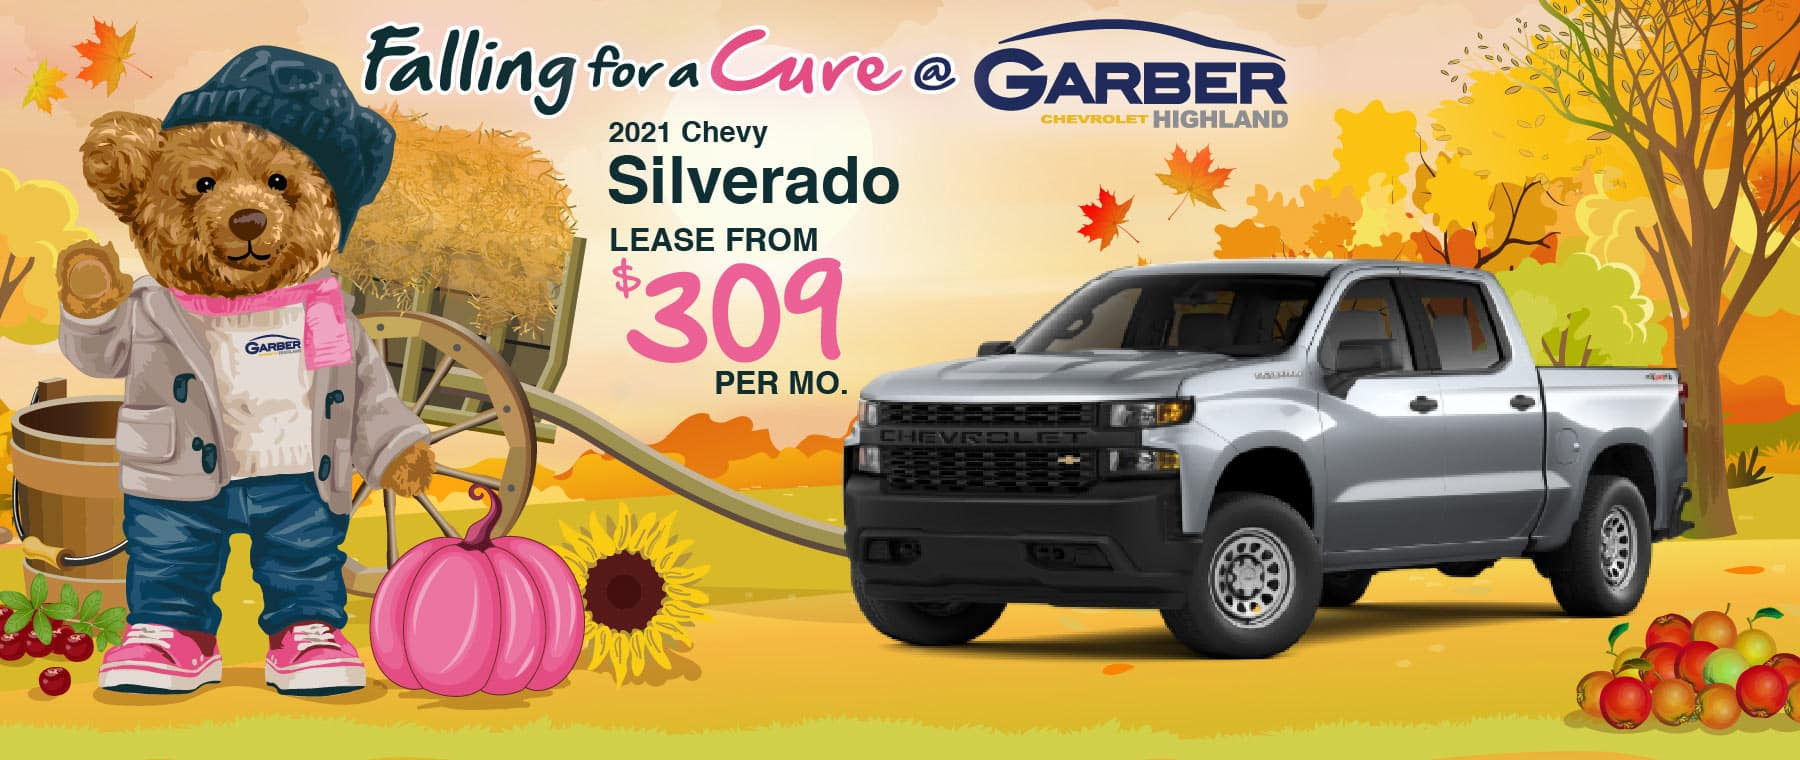 2021 Chevy Silverado - lease from $309 per month